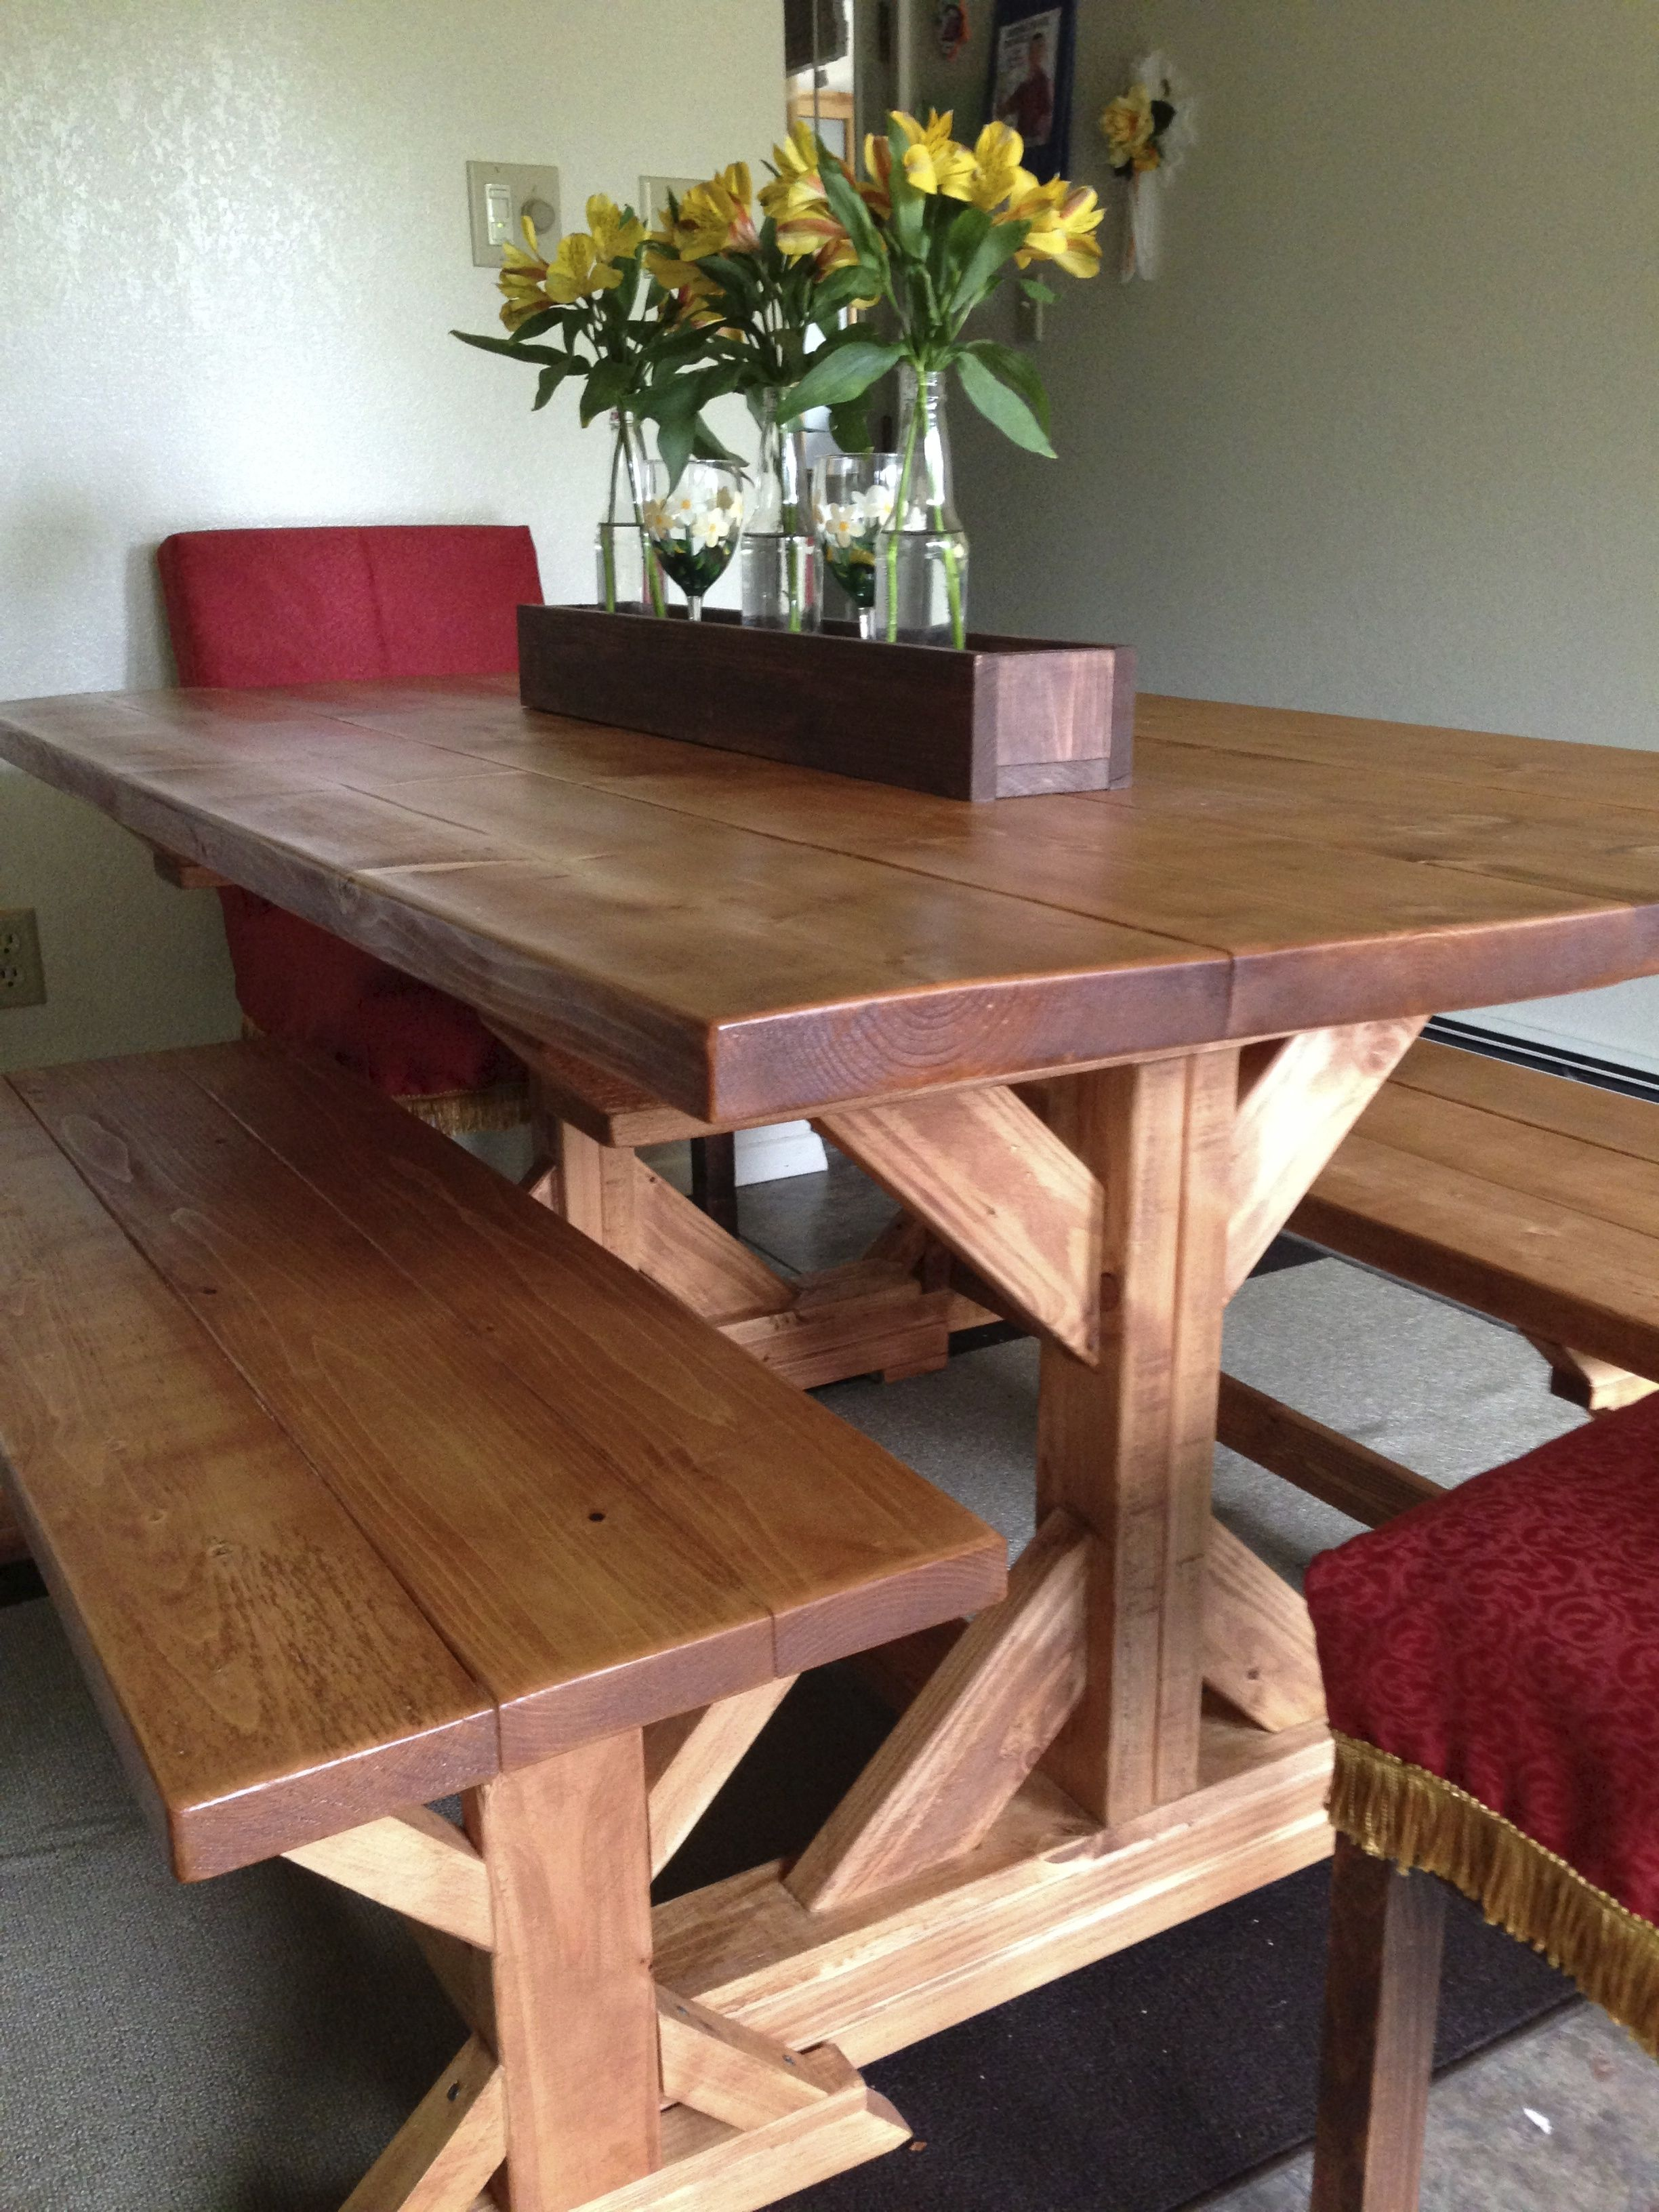 Fancy X Farmhouse Table and Benches. Plans at Ana